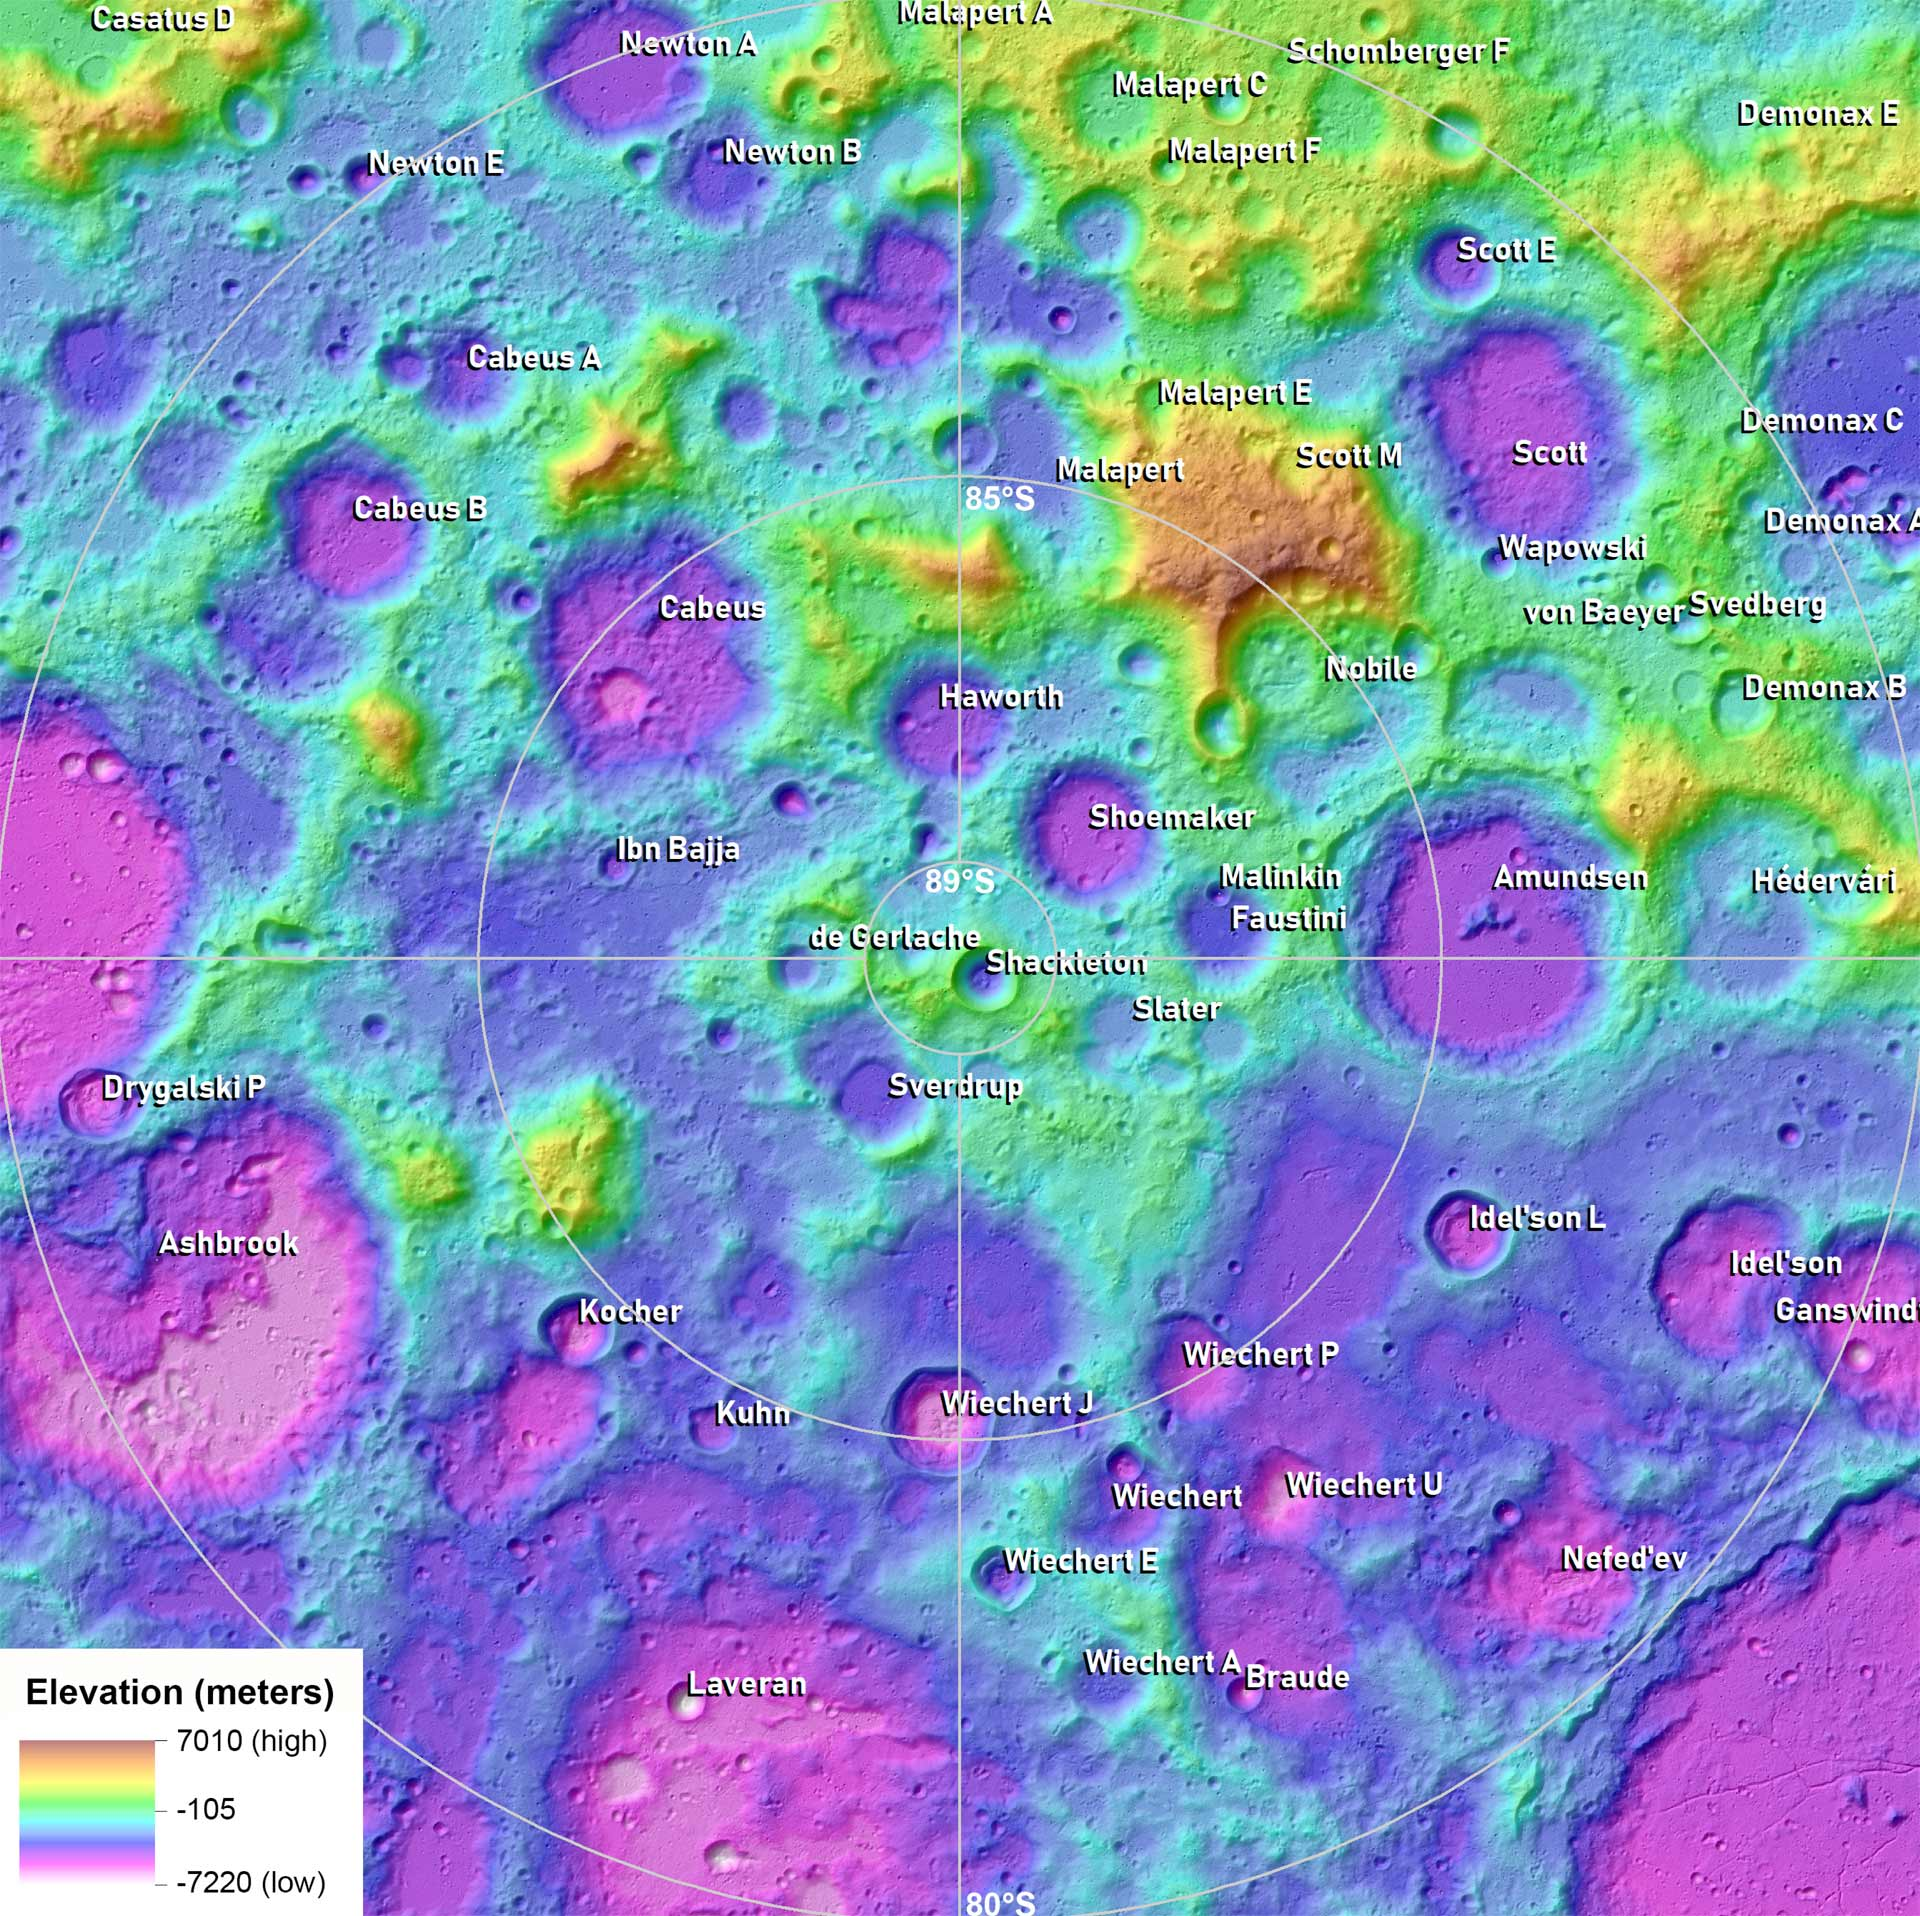 Planetary Researchers Create Atlas of Moon's South Pole ... on nasa moon map, europa moon map, titan moon map, venus map, mars with oceans map, triton moon map, high resolution moon map, topographic moon map, colonized moon map, moon texture map, national geographic moon map,